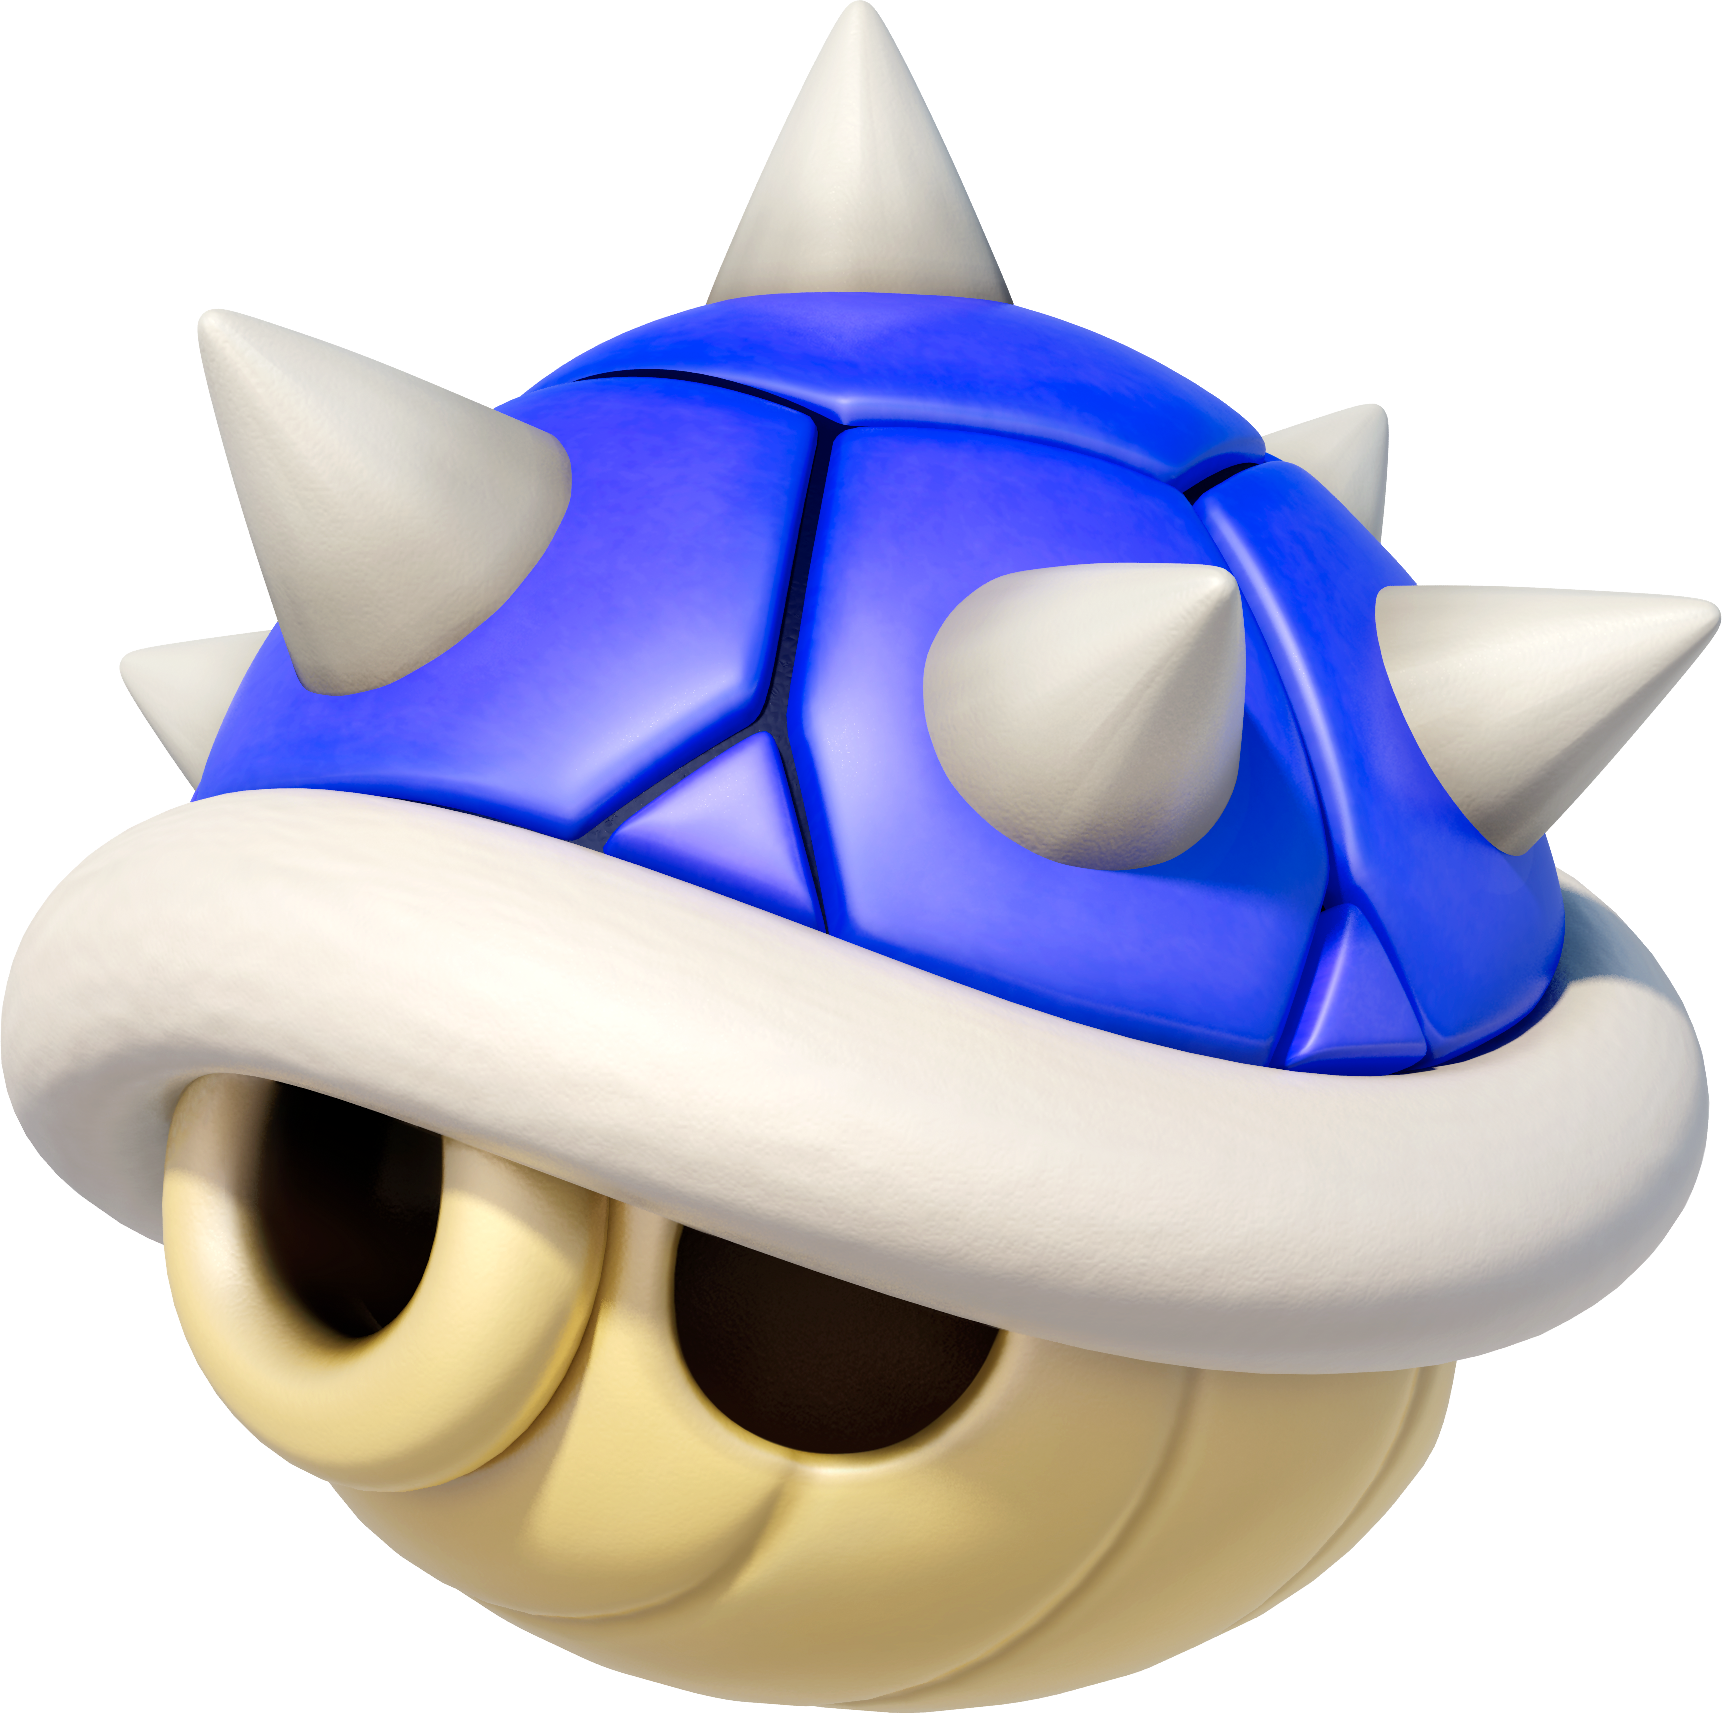 The of mario kart. Games clipart game theory